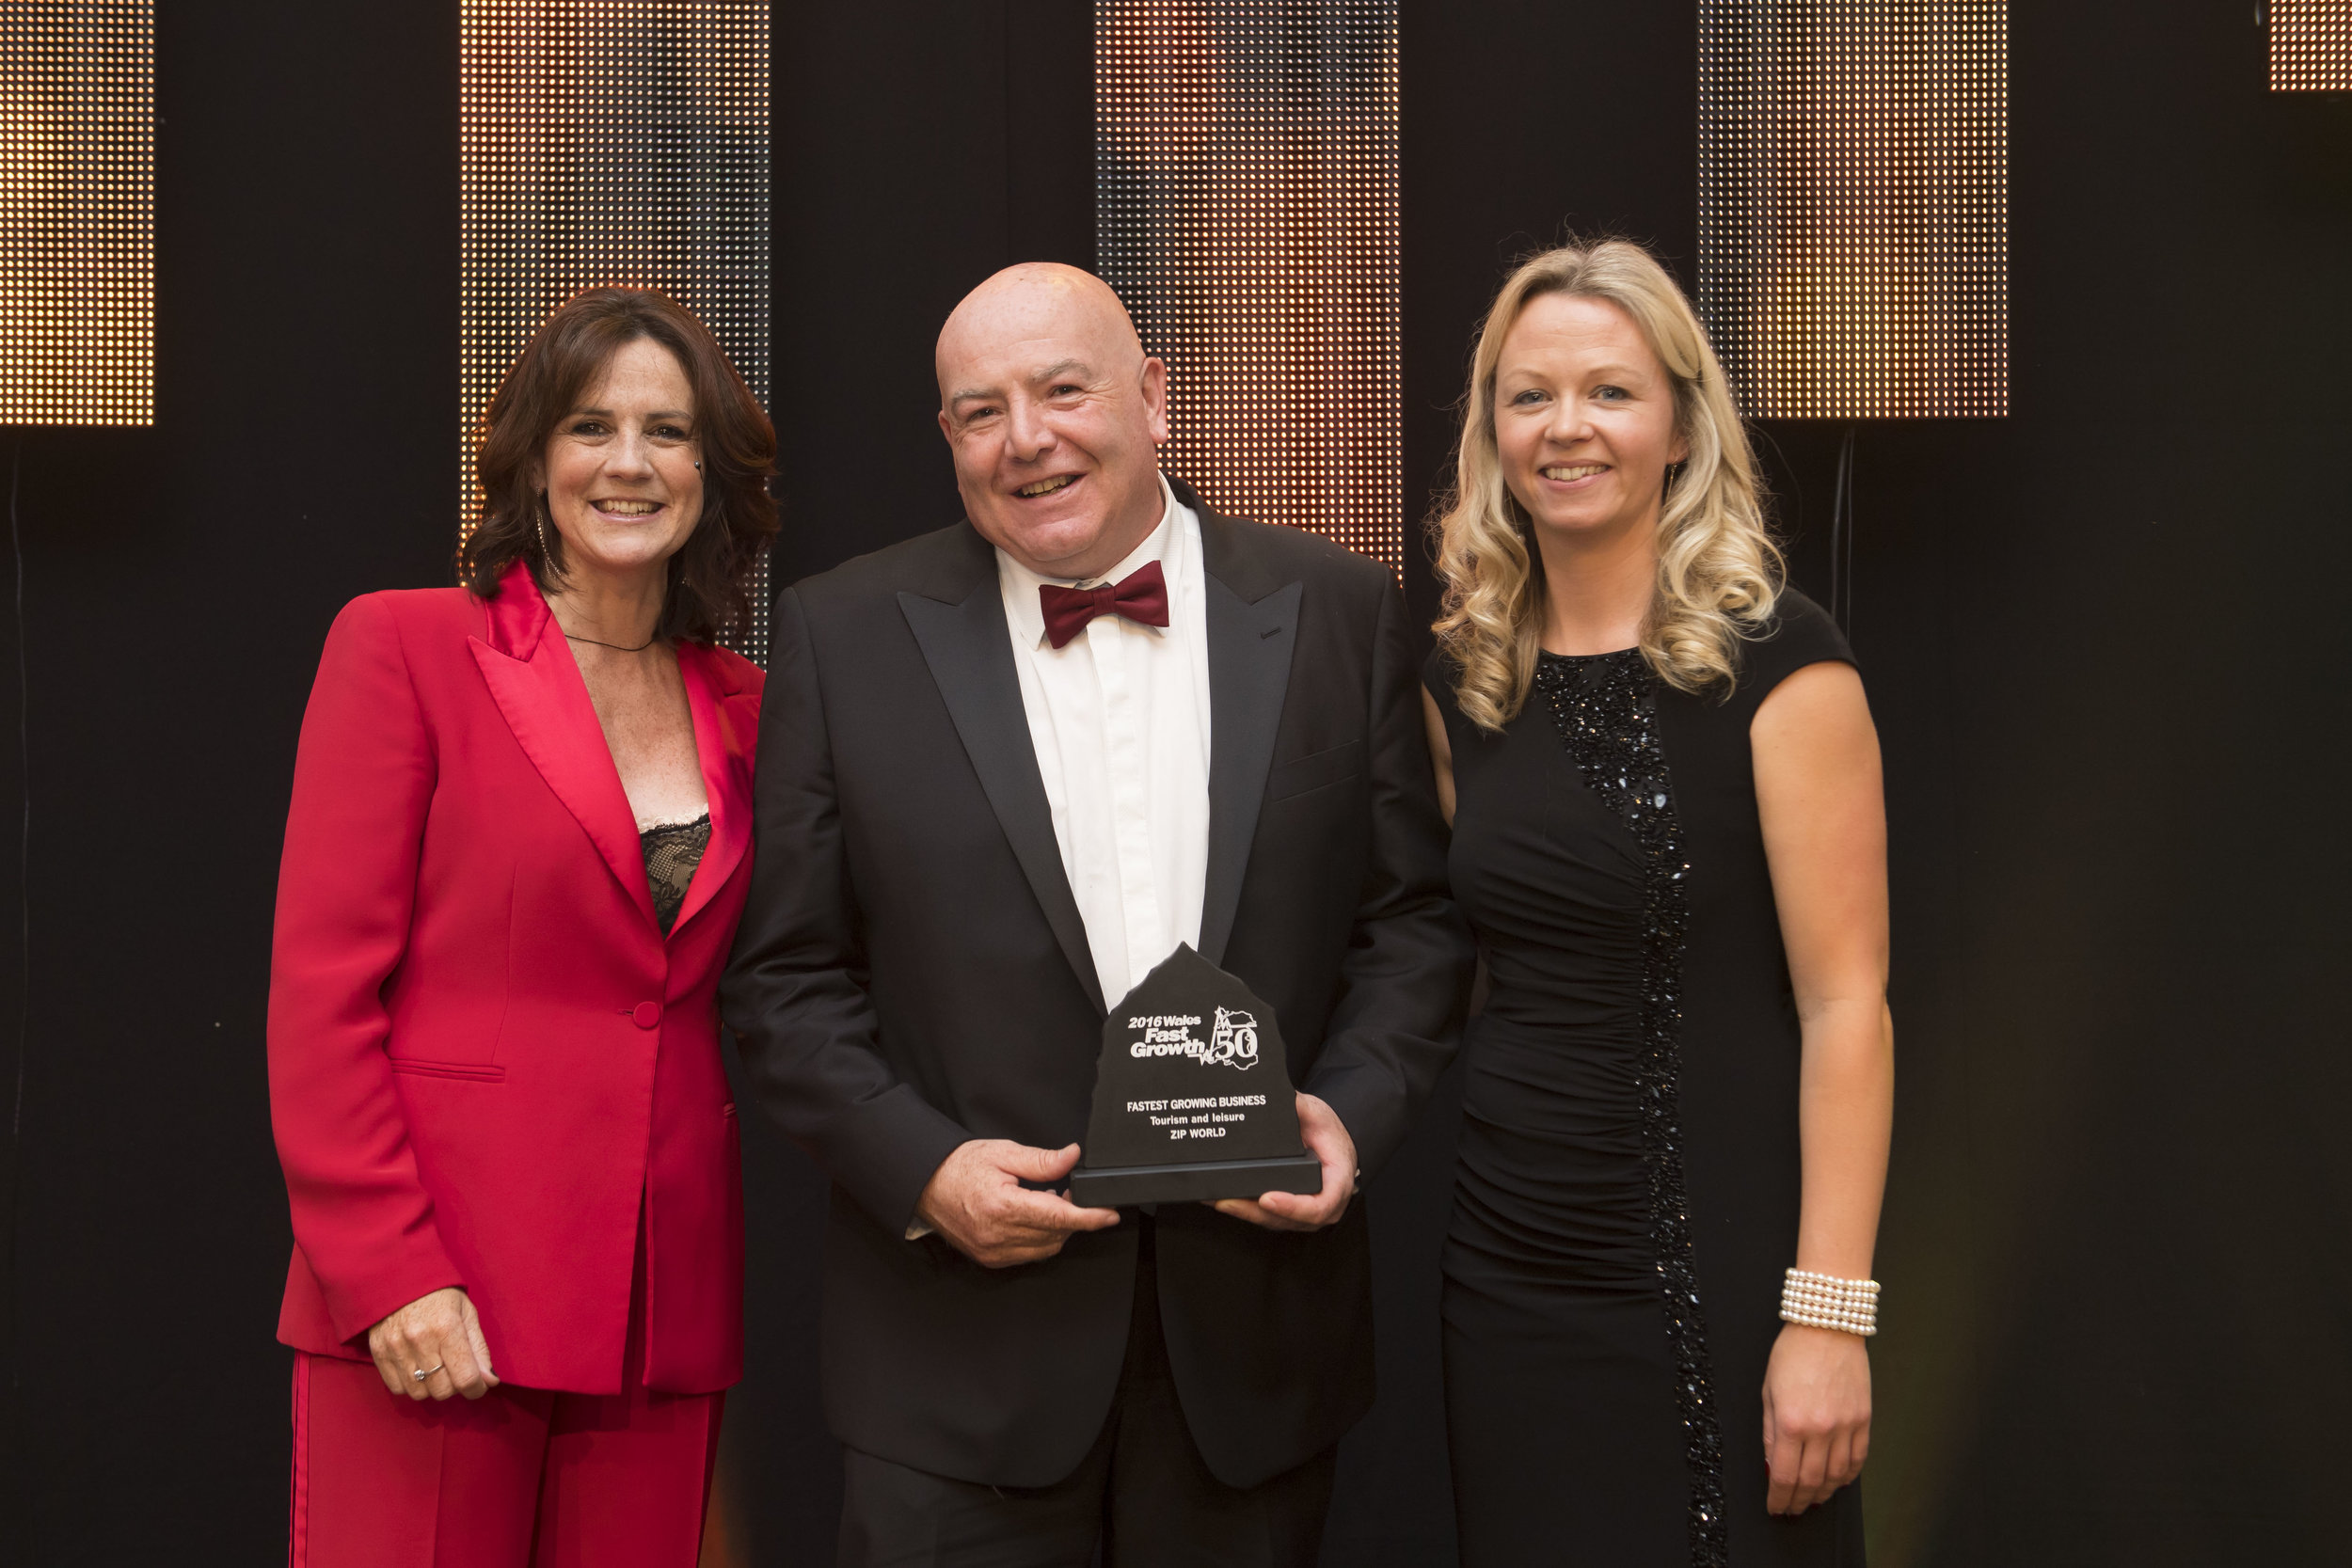 Grapevine presents the Tourism and Leisure Award to ZipWorld UK at The Fast Growth 50 Awards